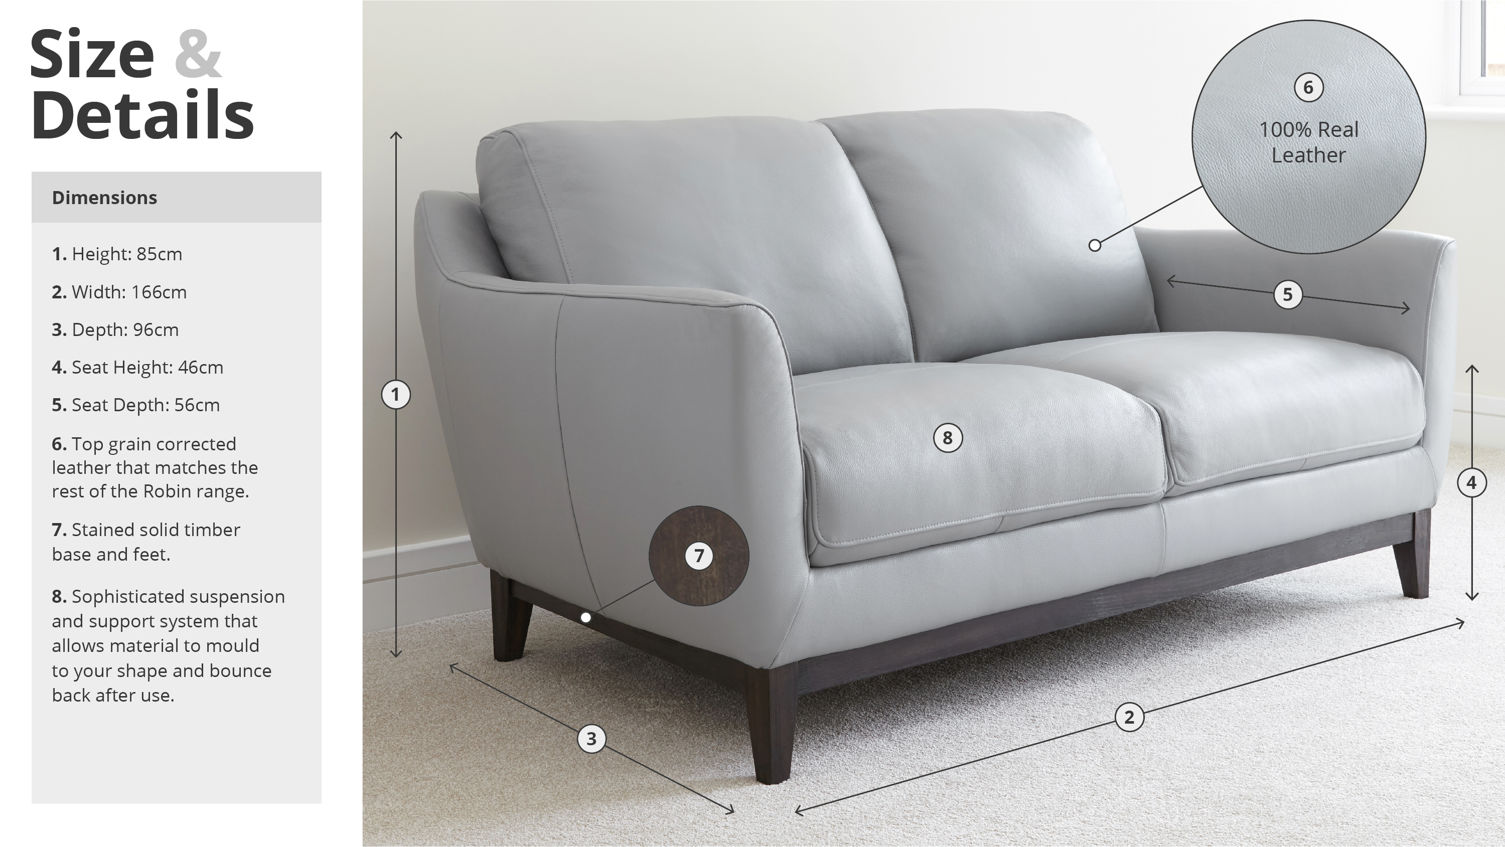 Robin 2 Seater Leather Sofa Sizing